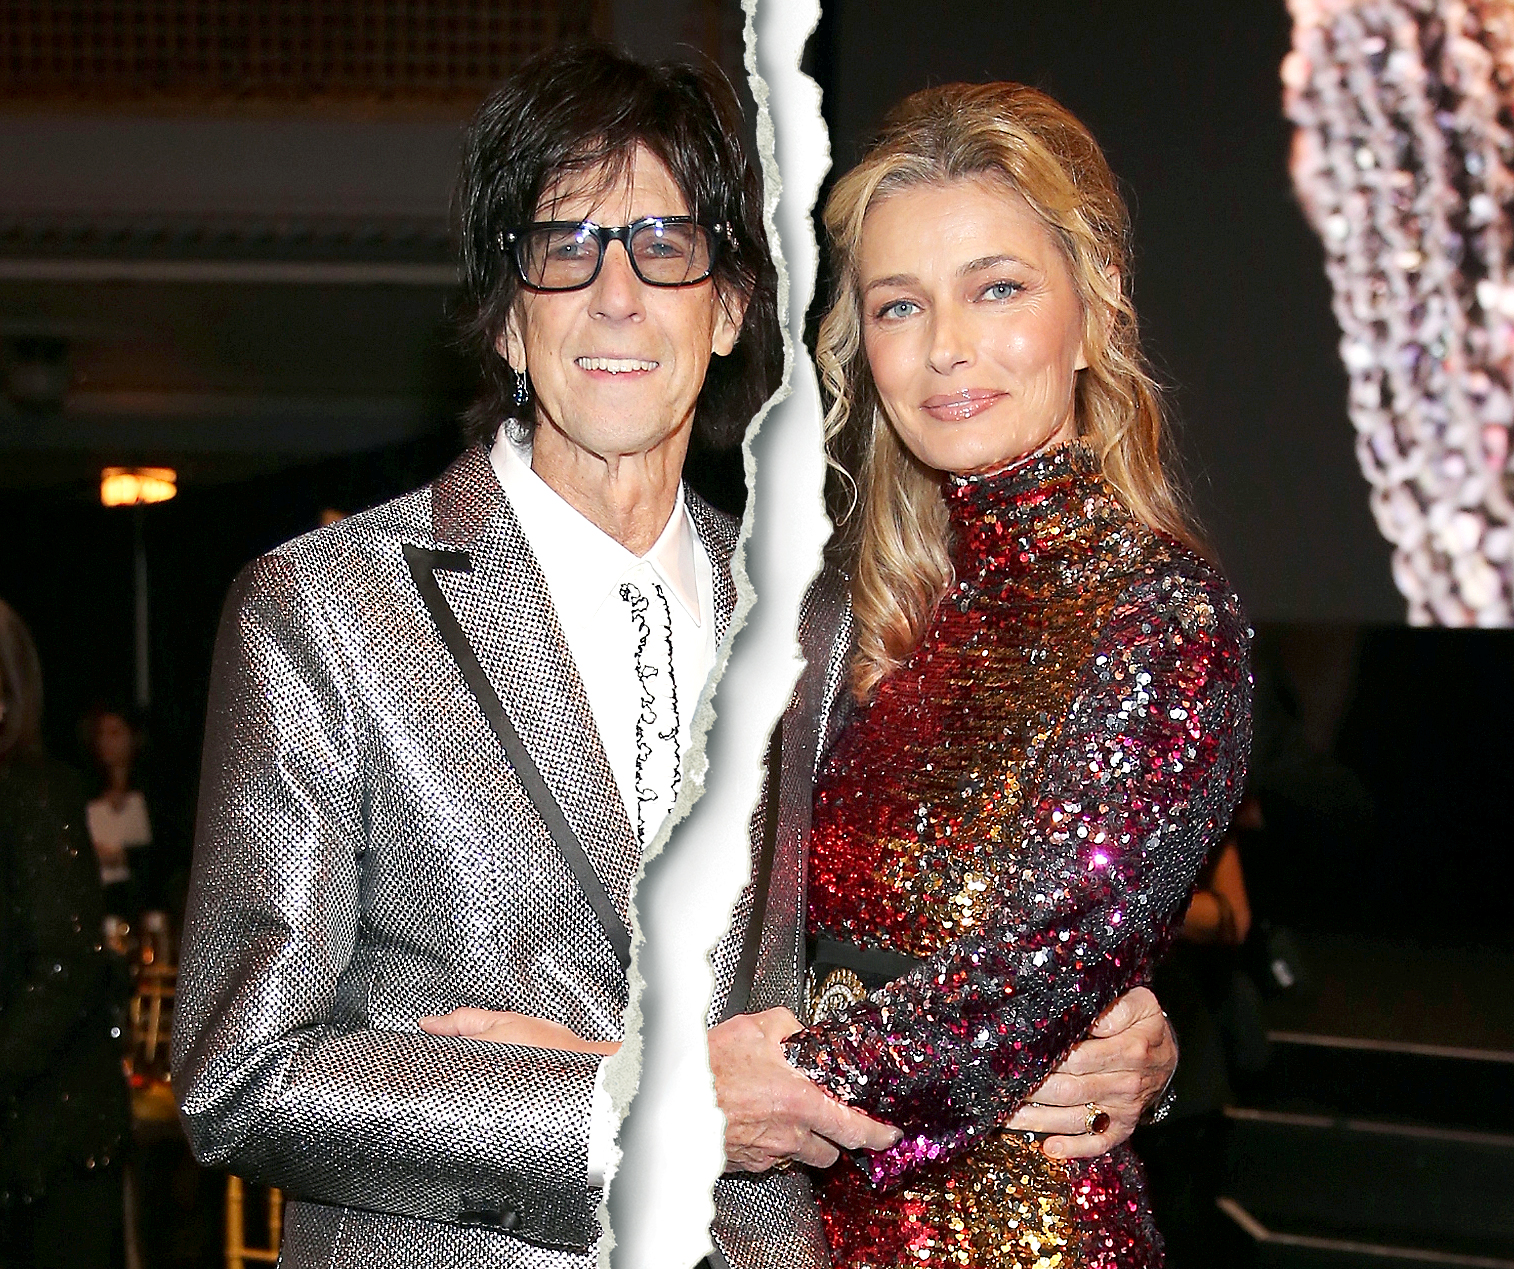 Ric Ocasek, Paulina Porizkova Separate After 28 Years